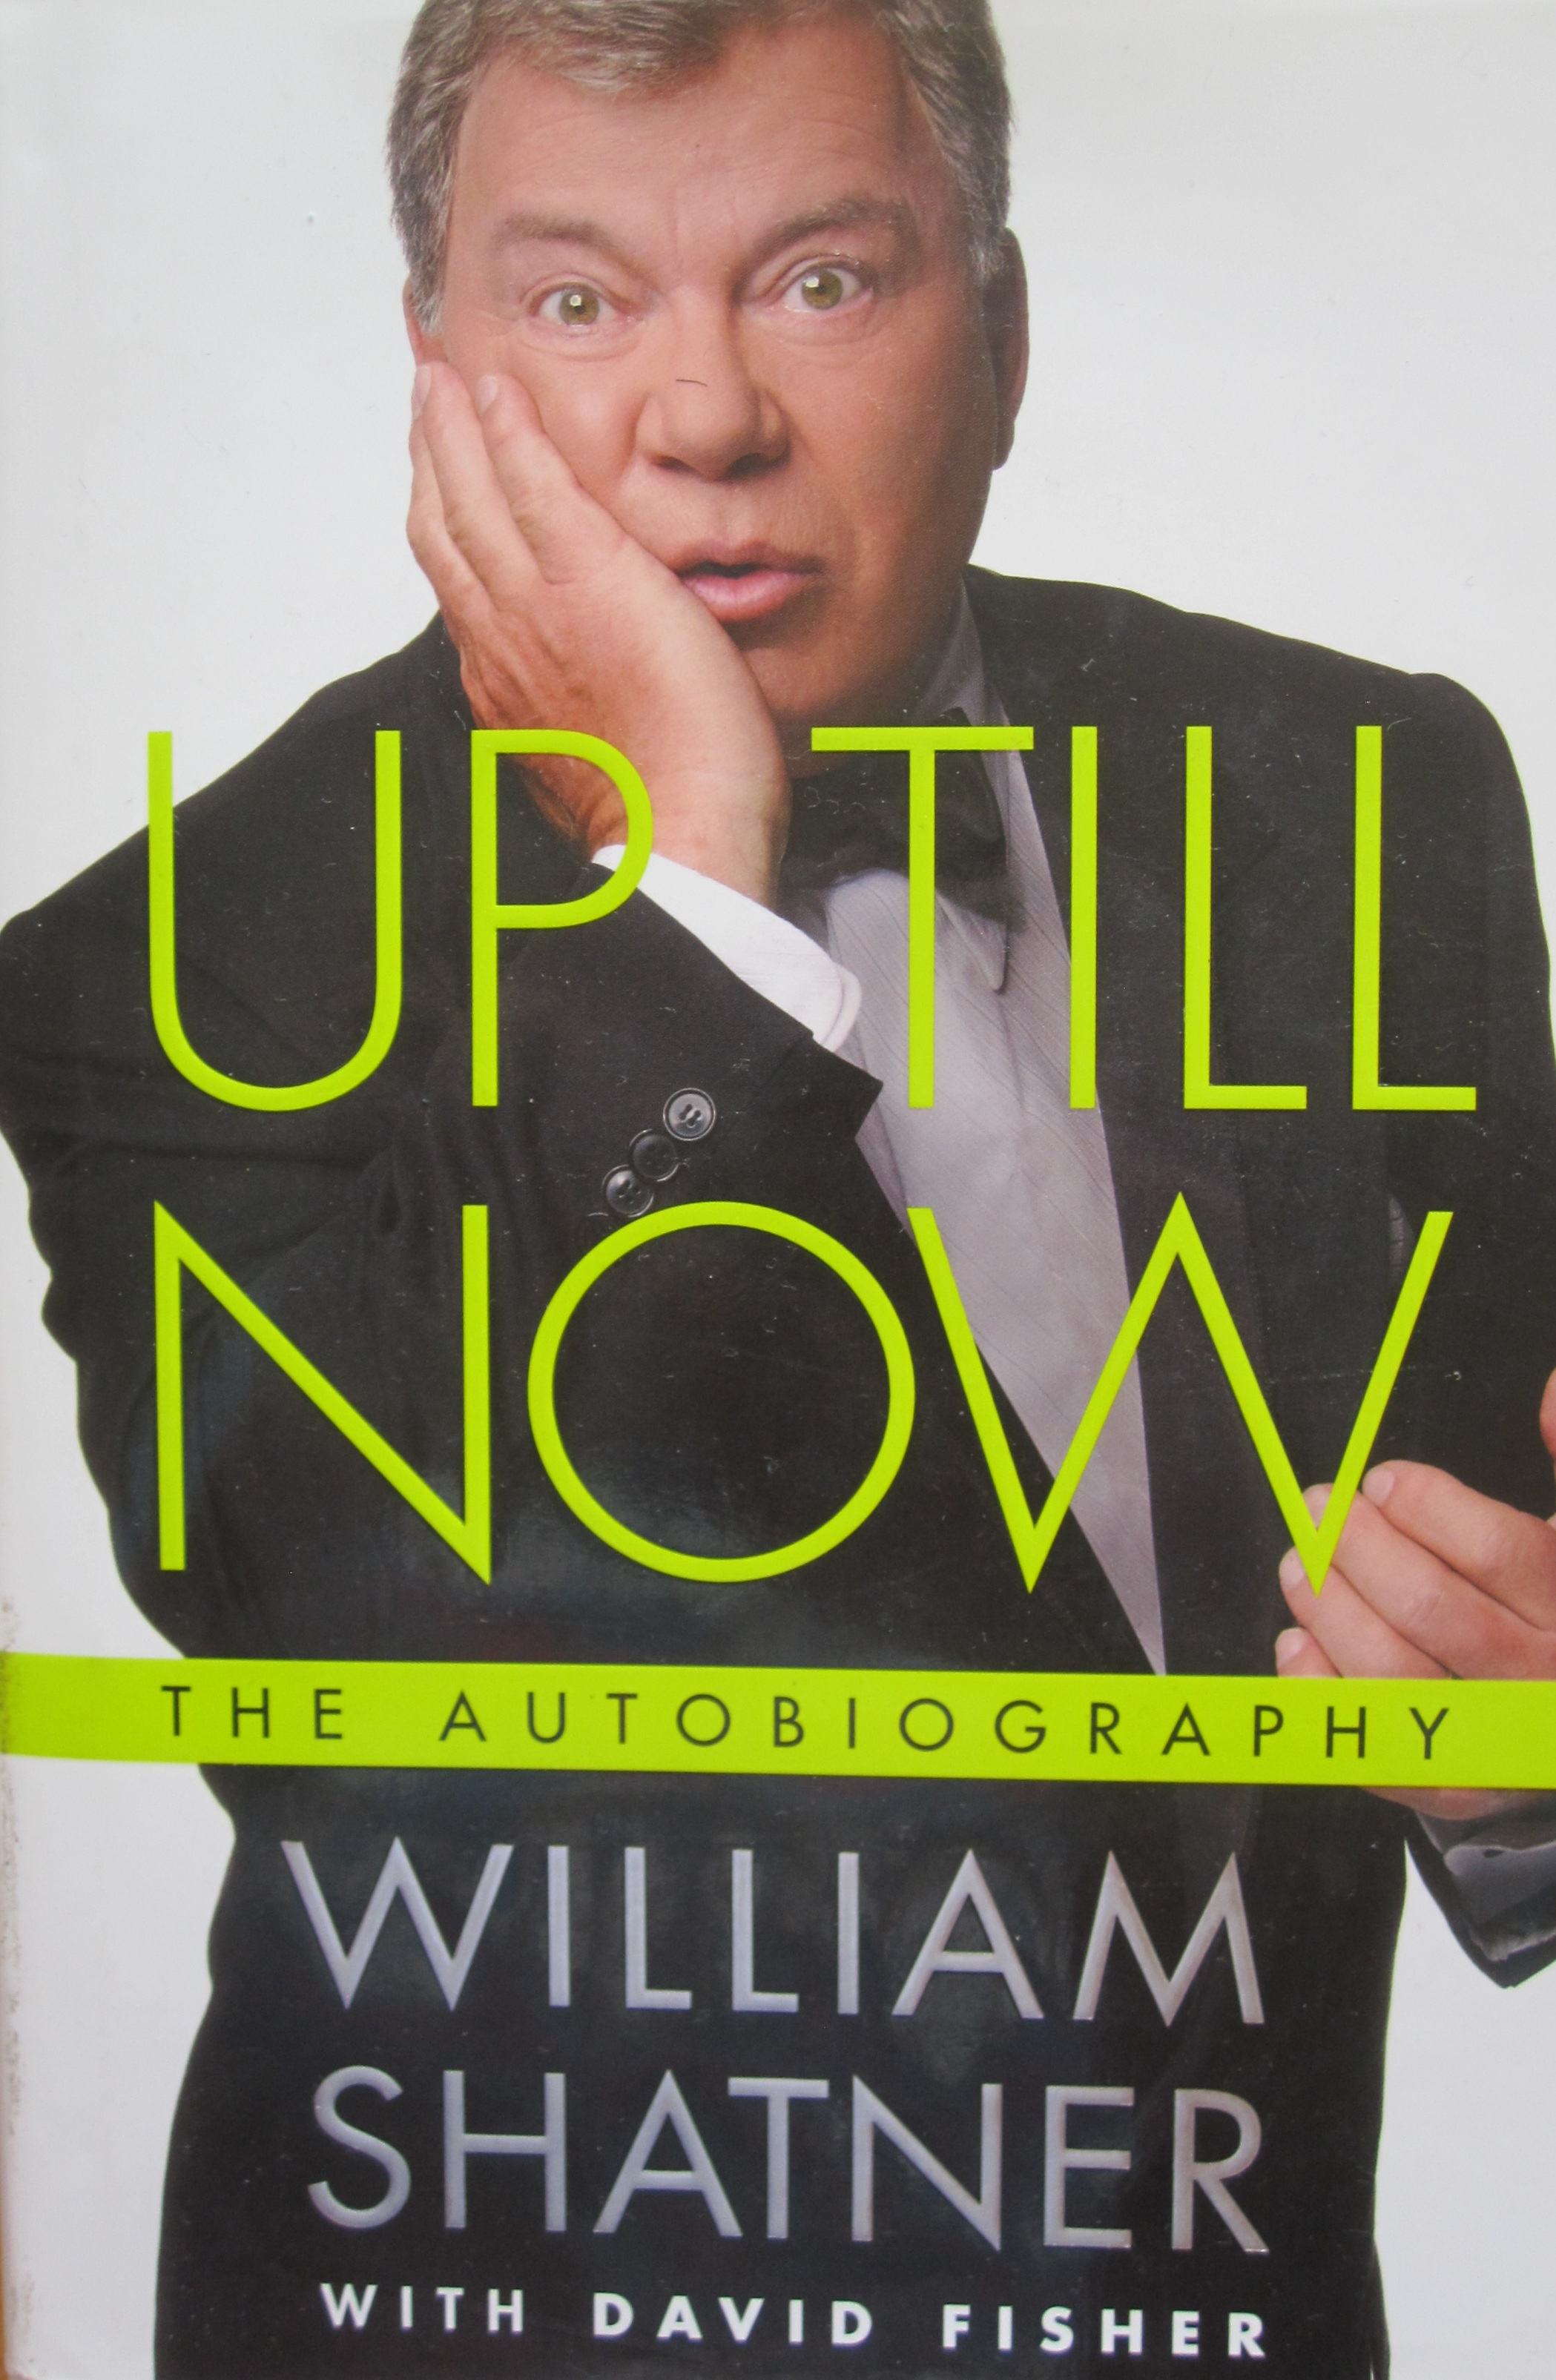 book review william shatner�s autobiography this